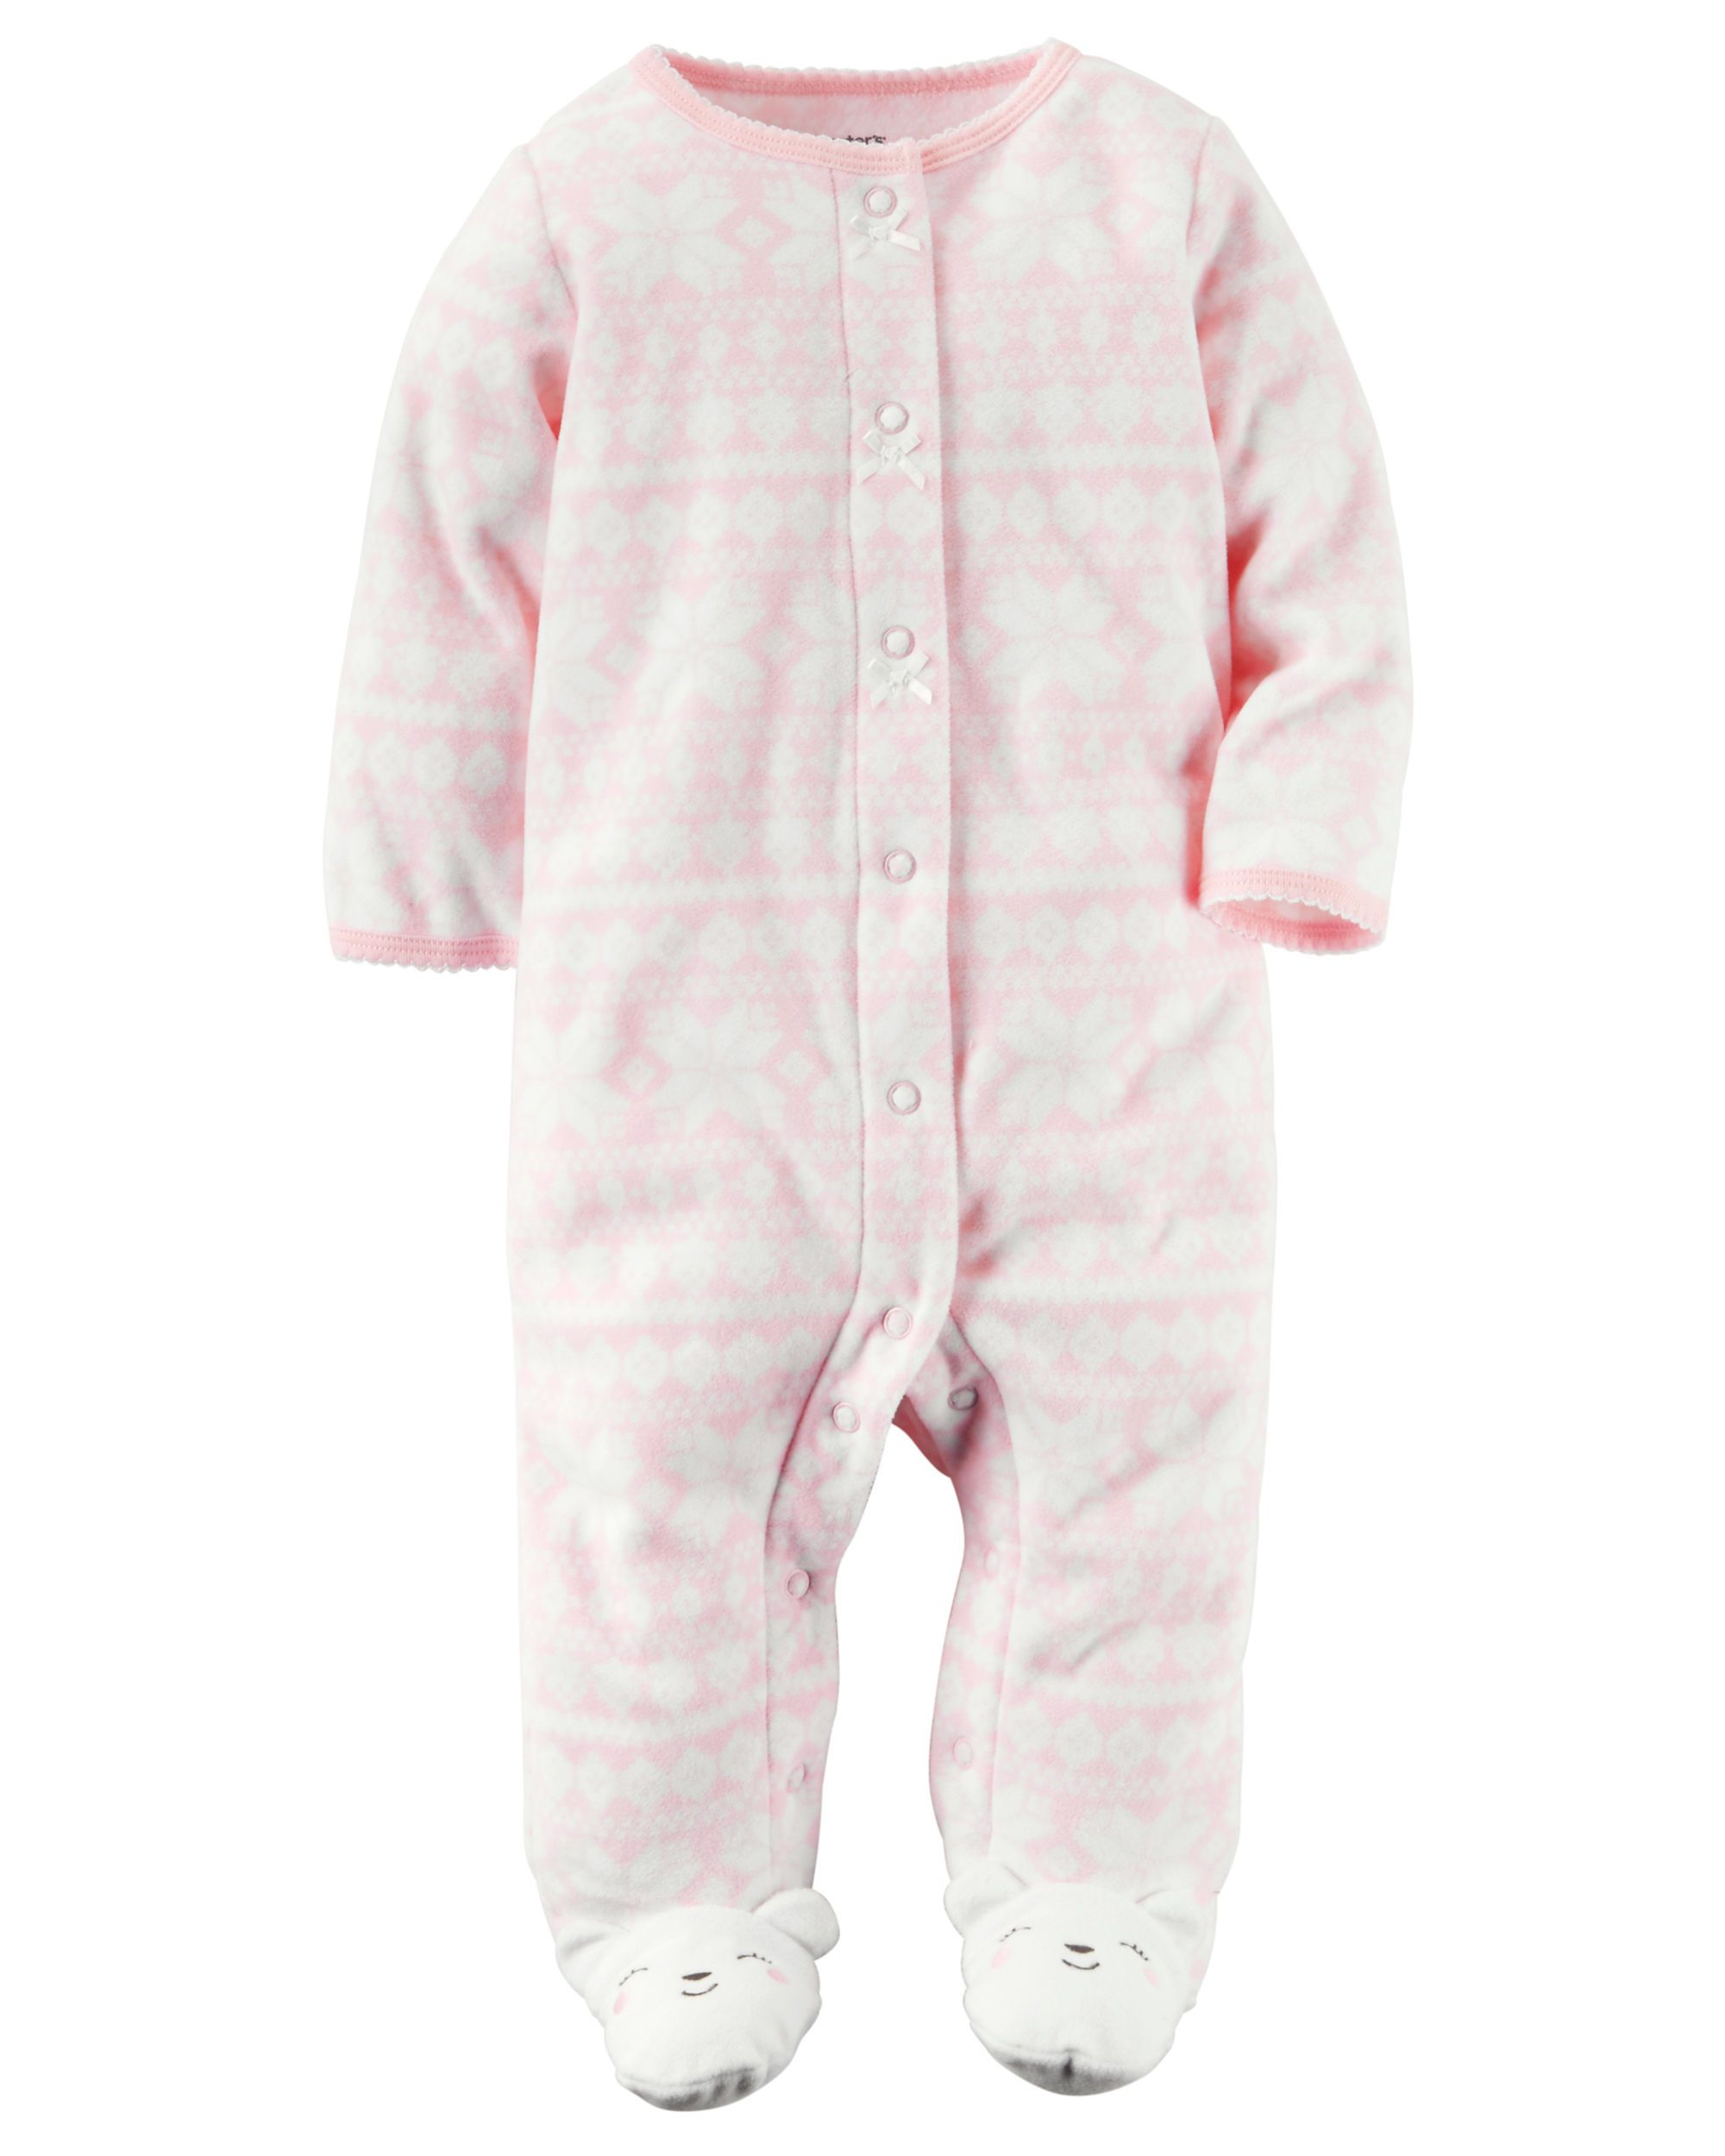 2c9429a61741 FOR JUNE. size 9 months. Baby Girl Fleece Snap-Up Sleep   Play ...